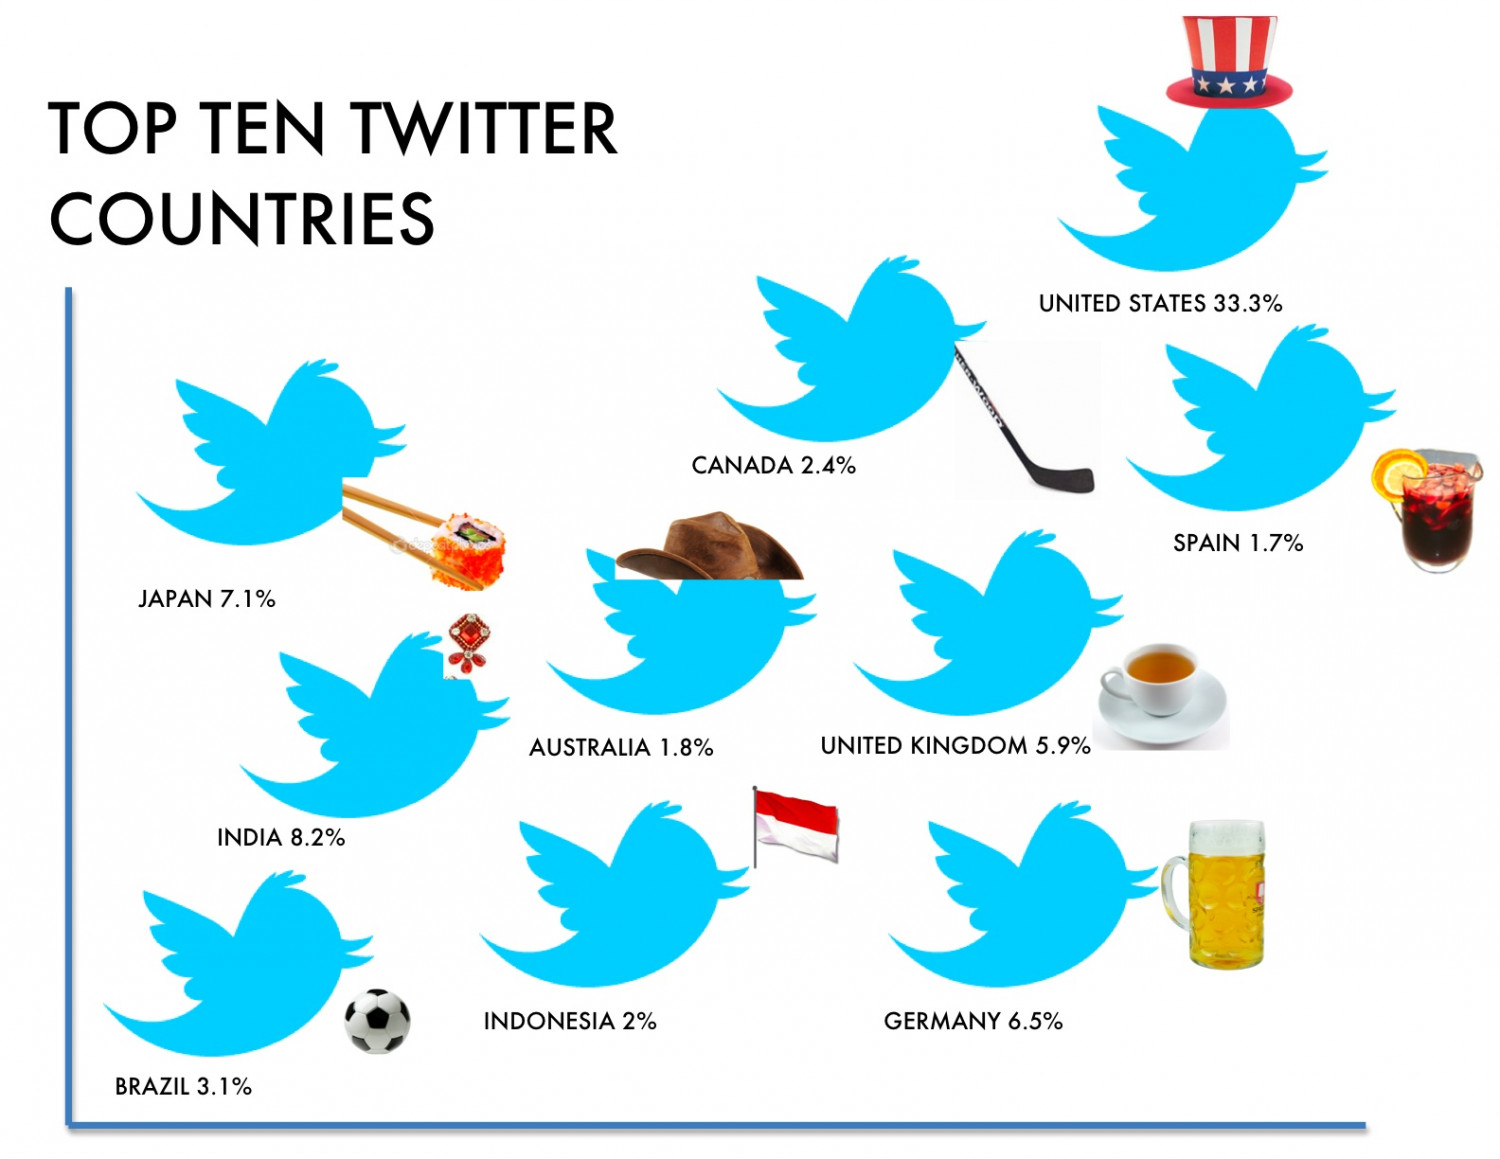 Top Ten Twitter Countries Infographic